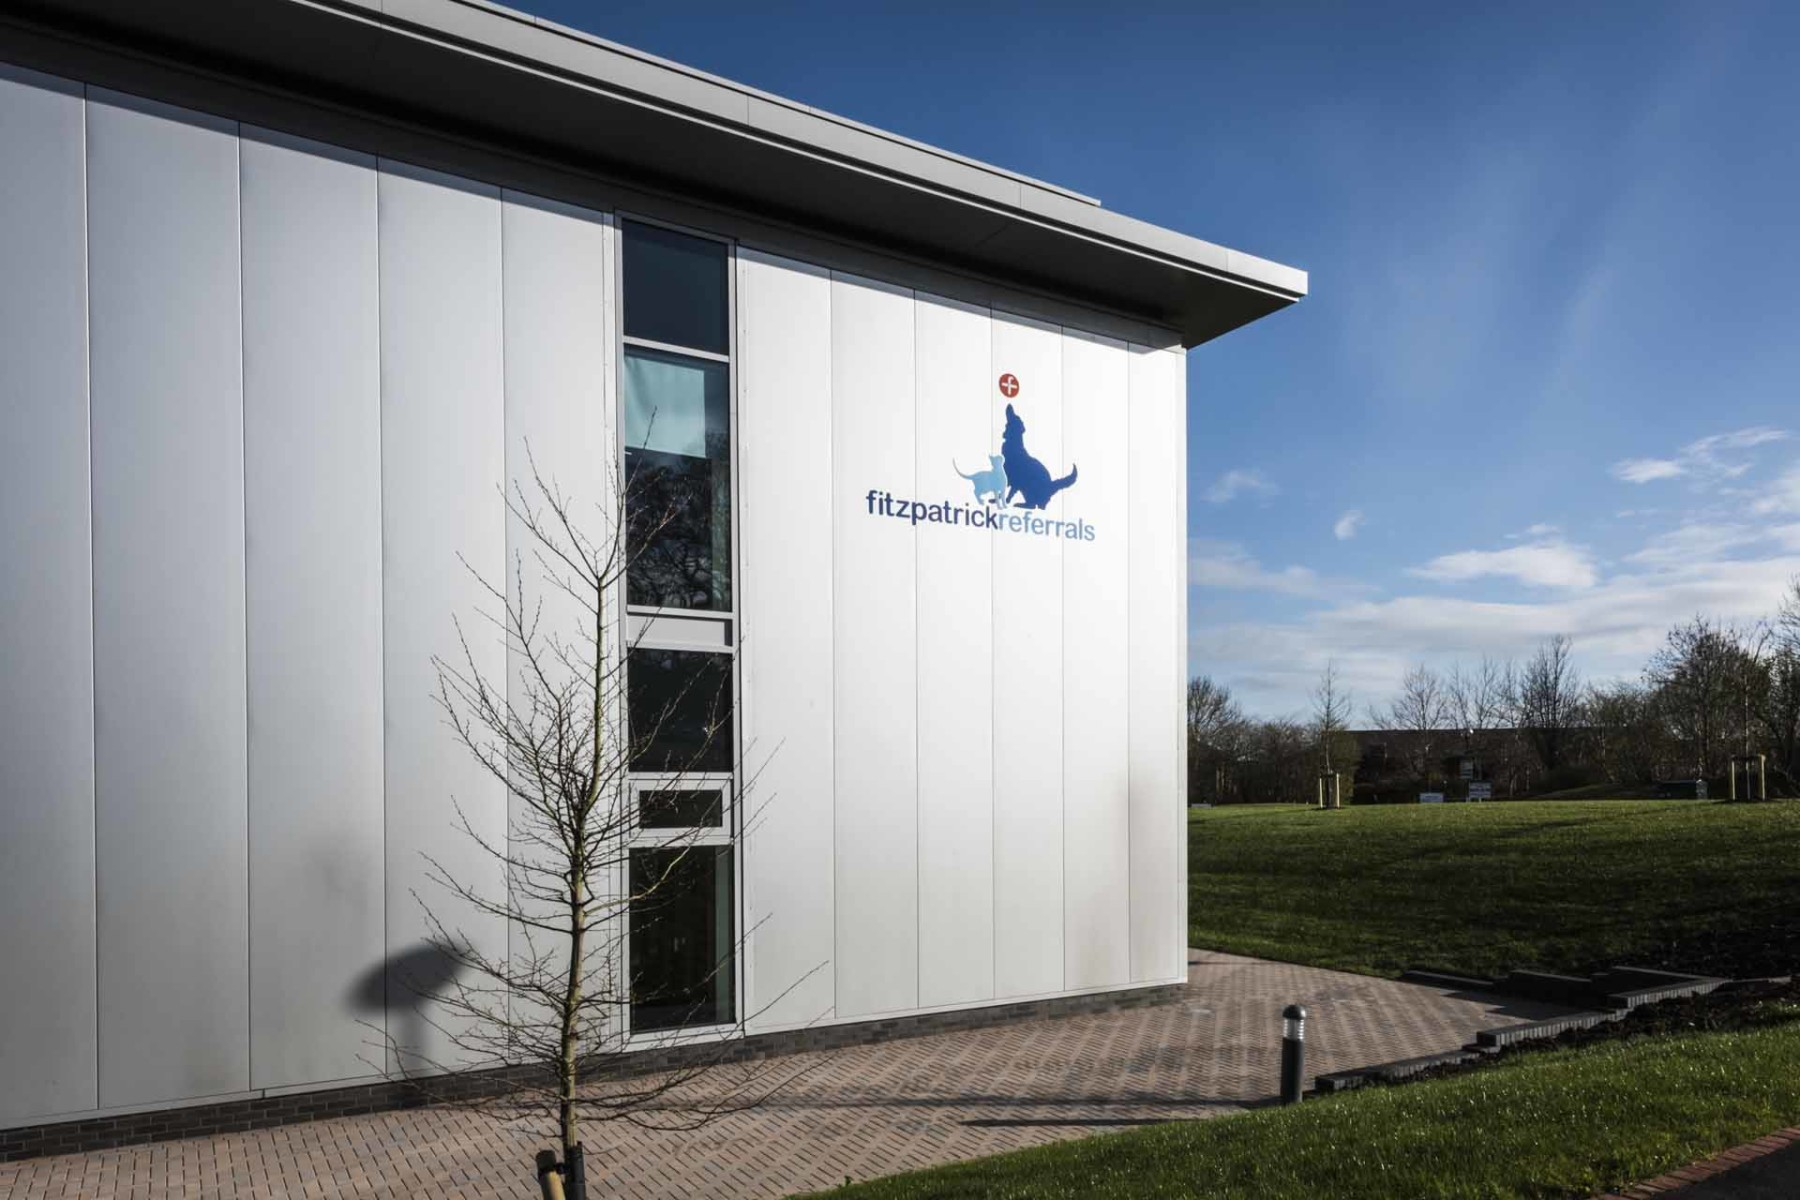 Fitzpatrick Referrals Oncology & Soft Tissue hospital in Guildford